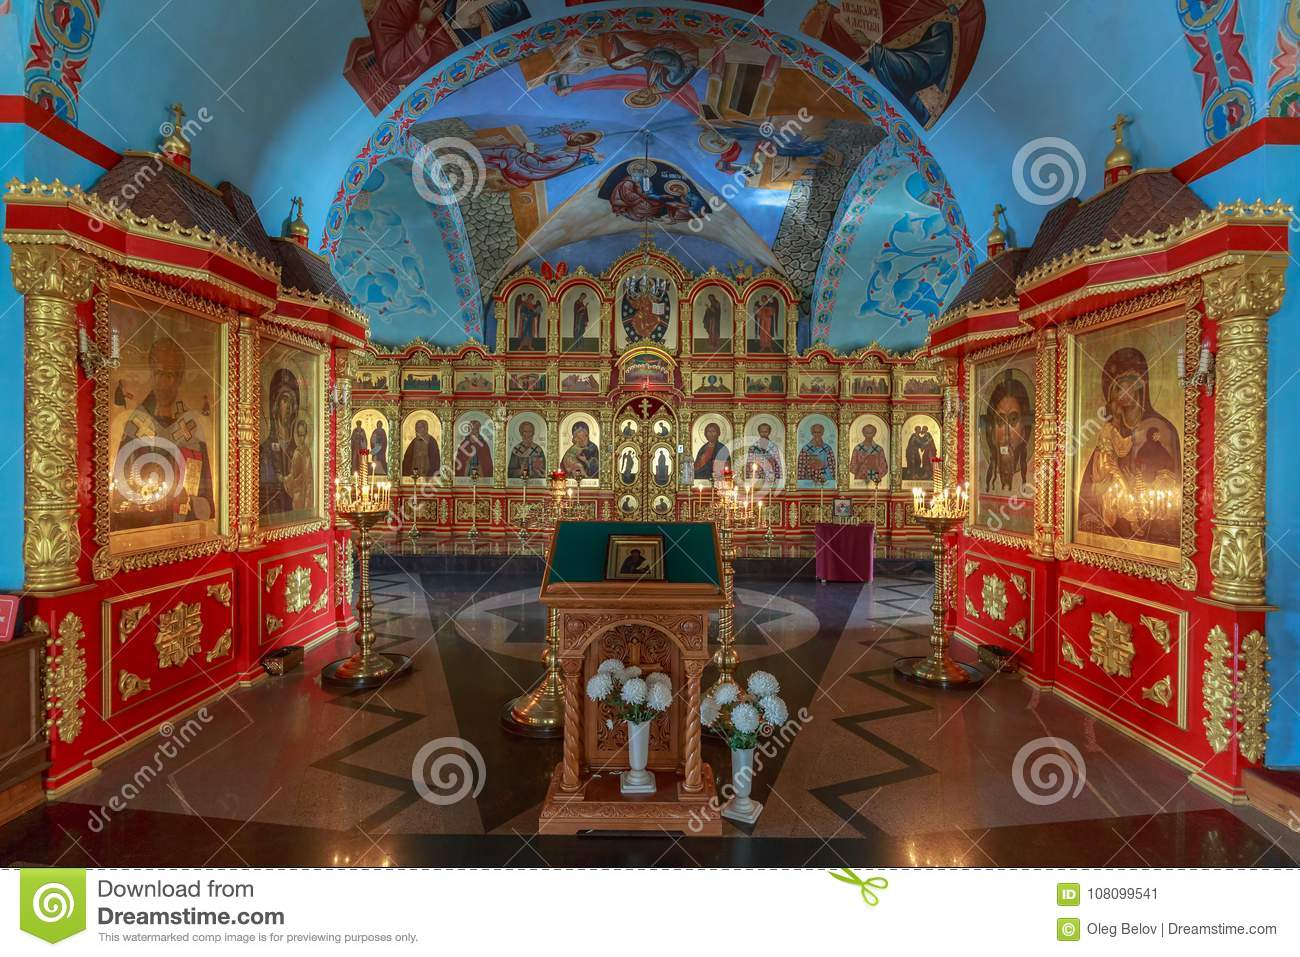 Astrakhan, Assumption Cathedral on the territory of the Astrakhan Kremlin: history, description, address 5